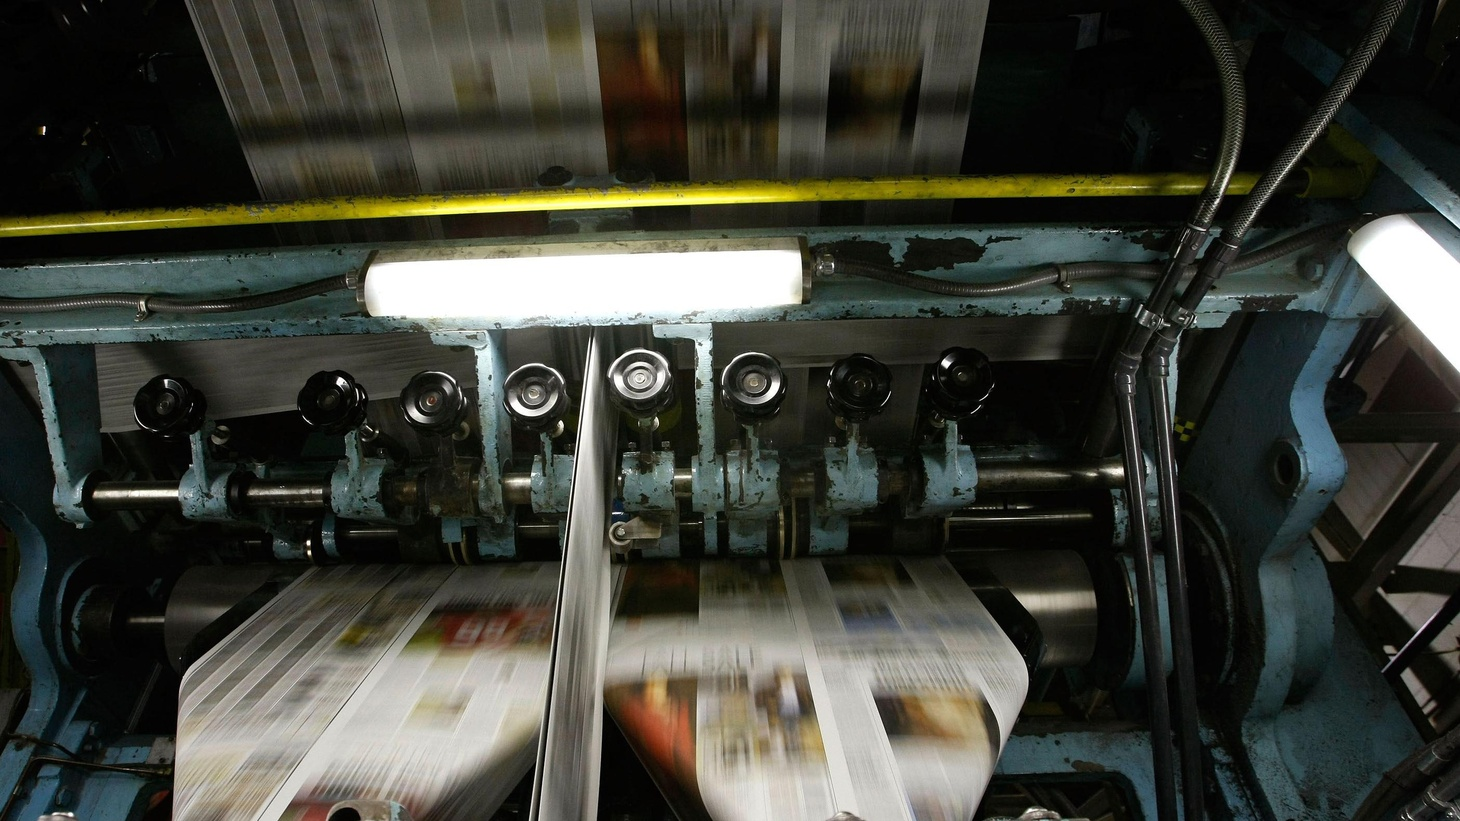 California newspapers are on the ropes. As they compete with themselves on the Internet, the New York Times may be covering local news in LA and San Francisco. We hear about that and the three insiders most likely to succeed LA Police Chief Bill Bratton. On our rebroadcast of To the Point, mixed messages about swine flu and the availability of H1N1 vaccine have led to confusion and unexpected public anxiety.